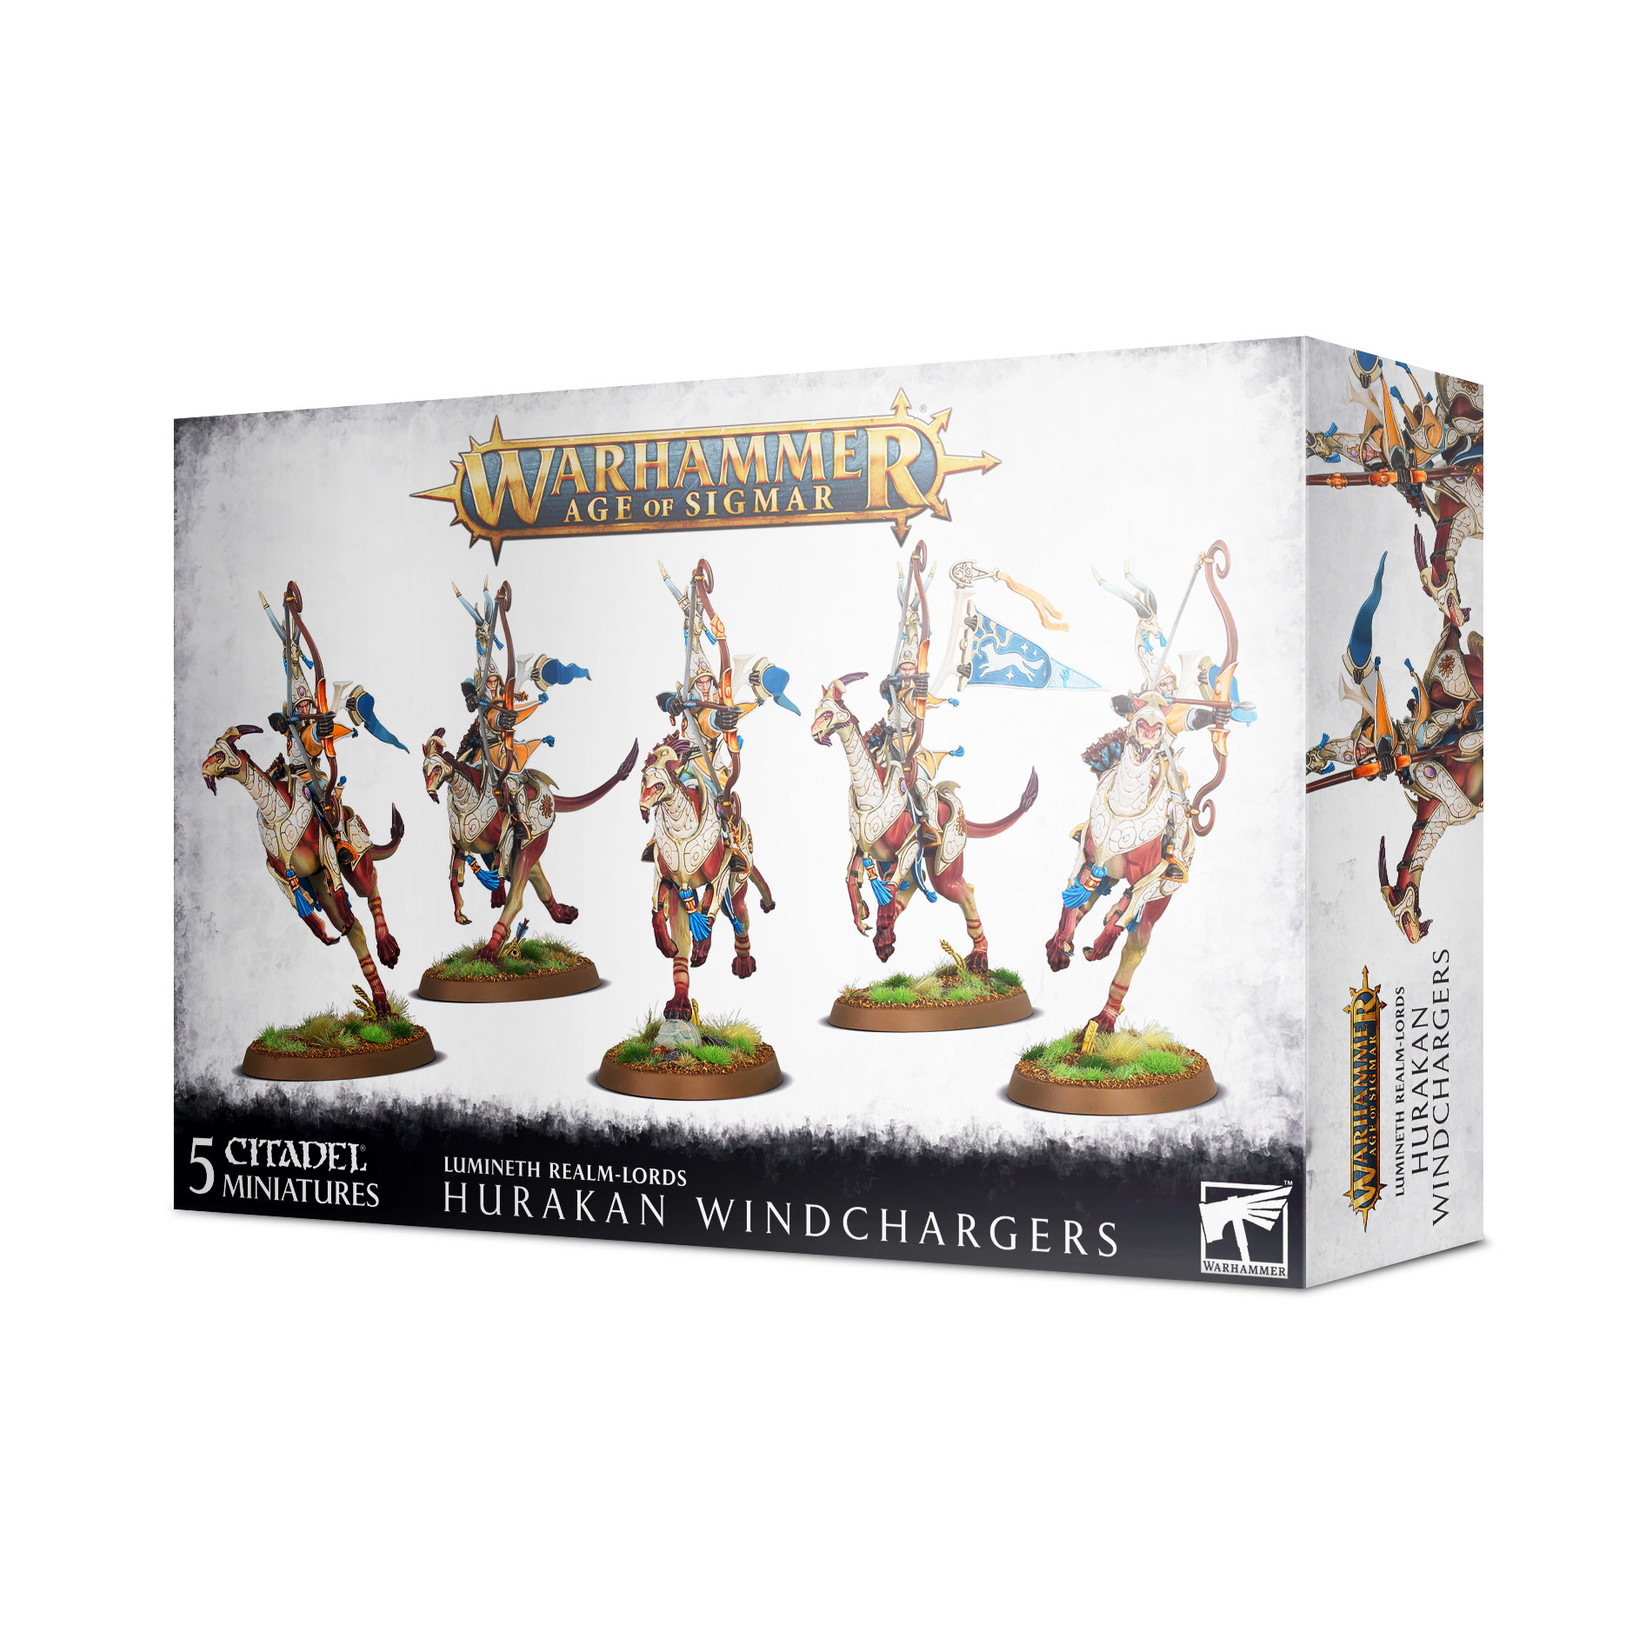 Games Workshop Warhammer Age of Sigmar: Lumineth Realm-Lords - Hurakan Windchargers